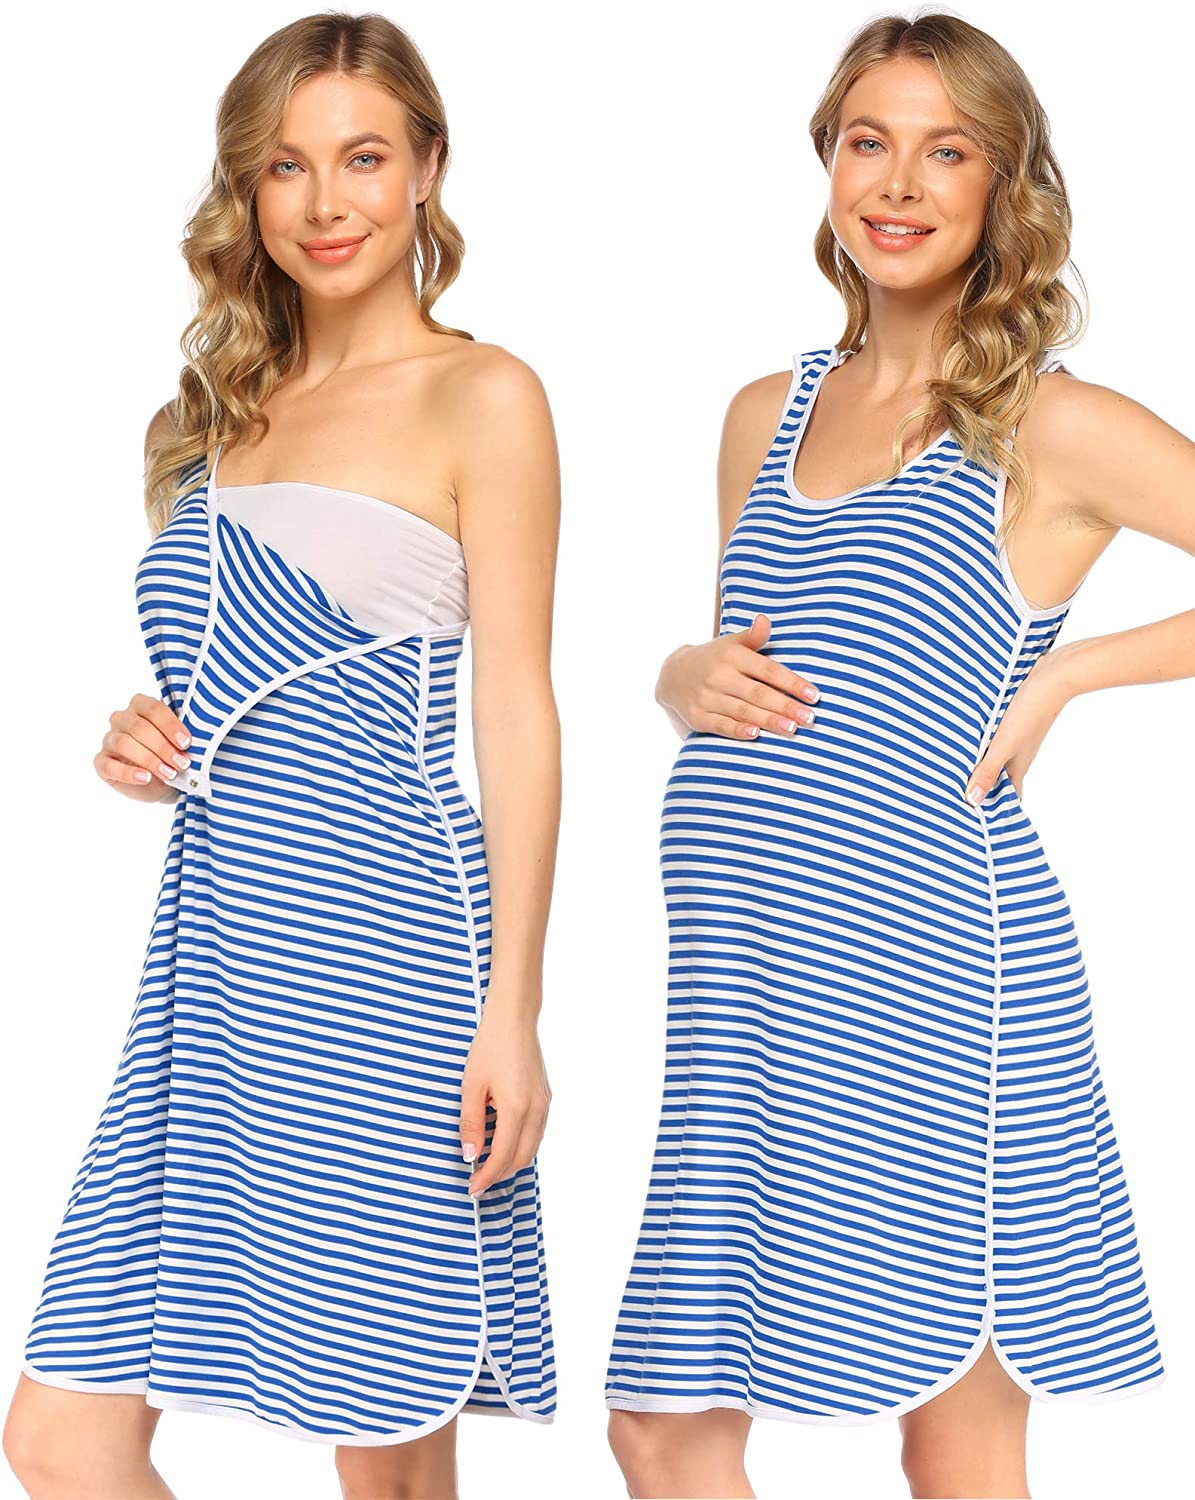 Evanhome Hospital Gown for Free shipping New Labor and Max 72% OFF Sleeveless Nursing Delivery